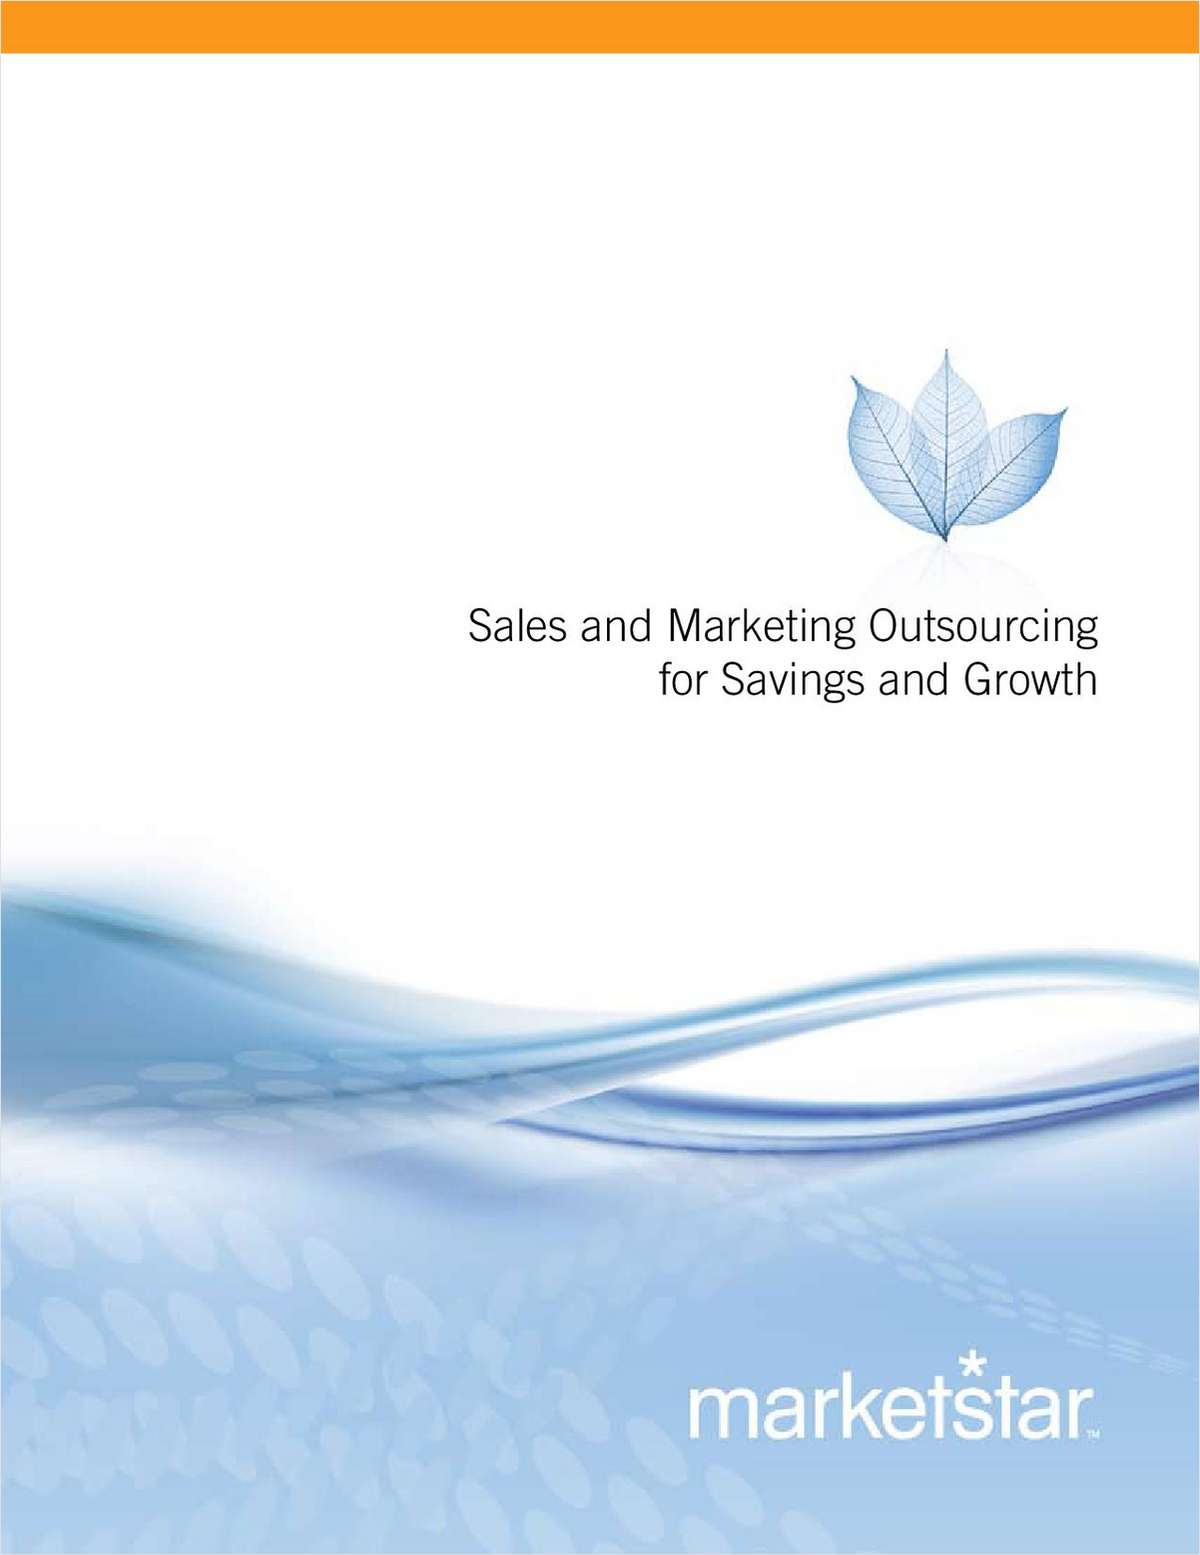 Sales and Marketing Outsourcing for Savings and Growth